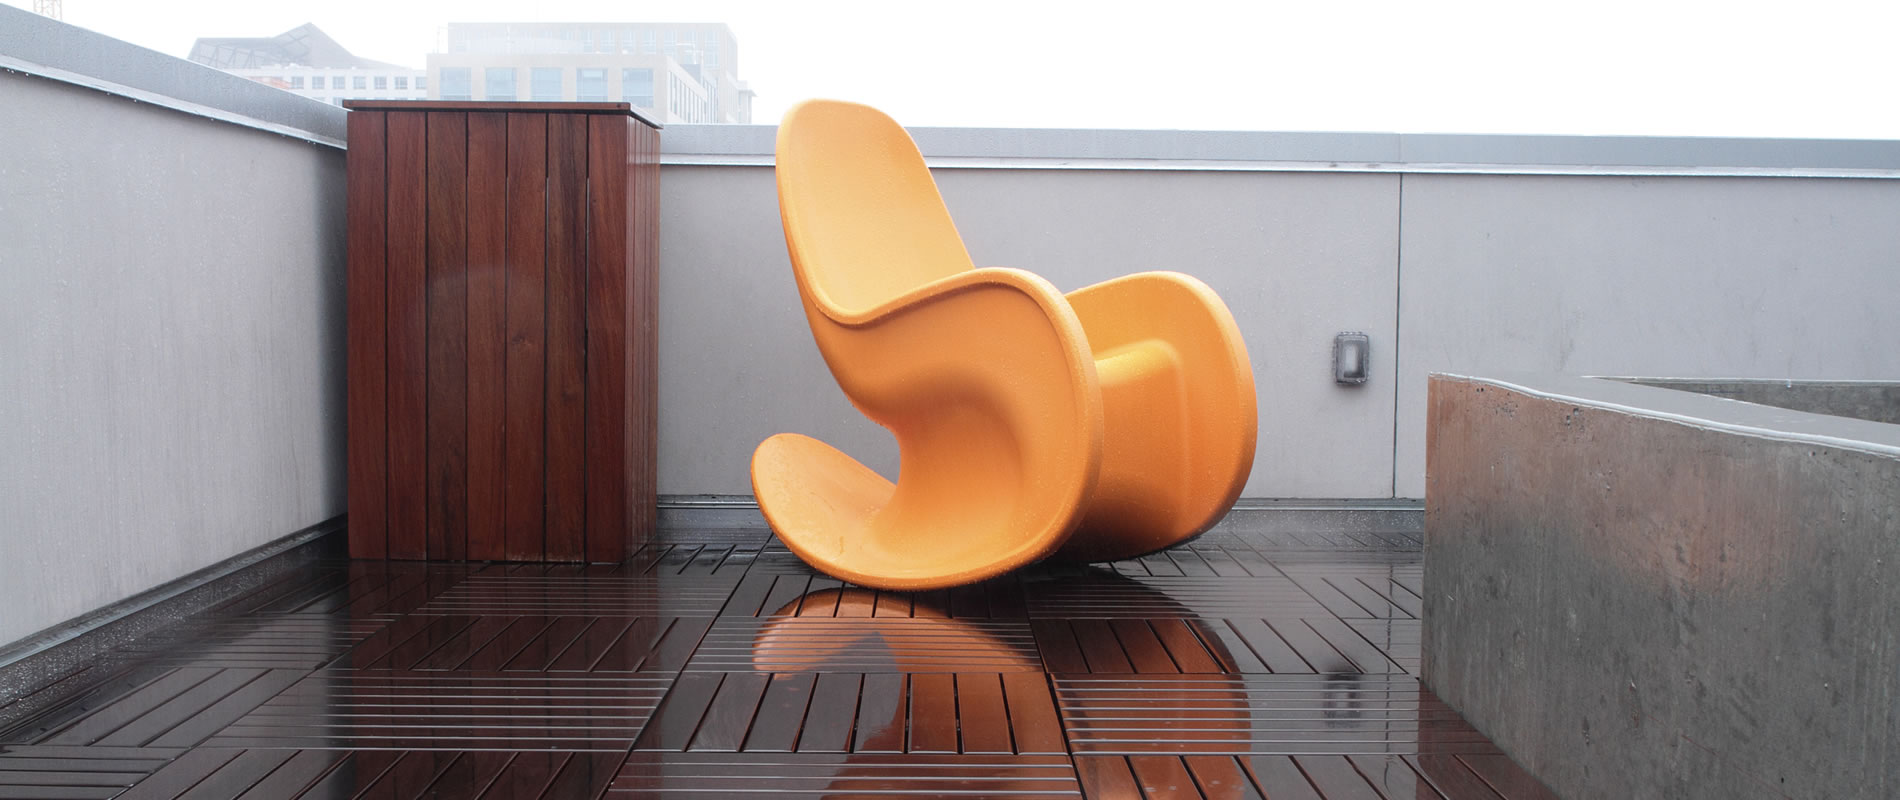 RockSmart Chair by Norix - Buy from Real Time Furniture